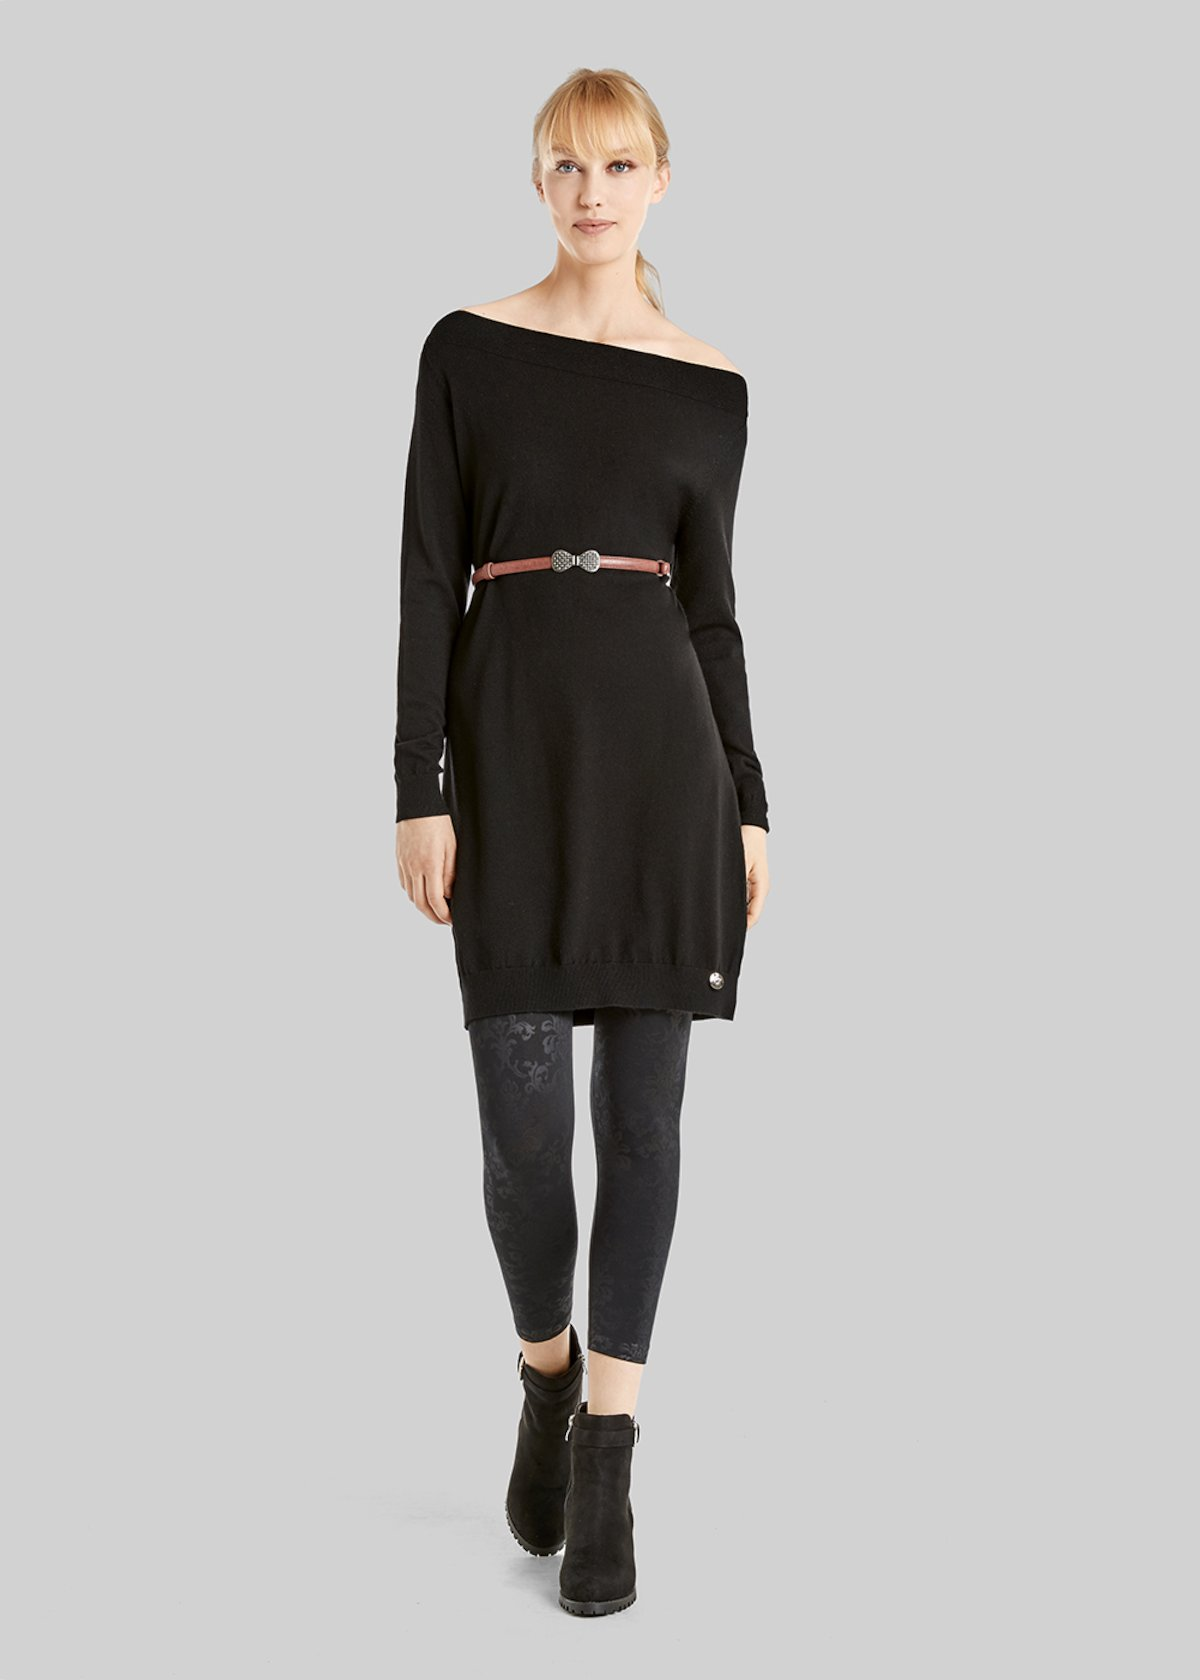 Matisse sweater with boat neckline - Black